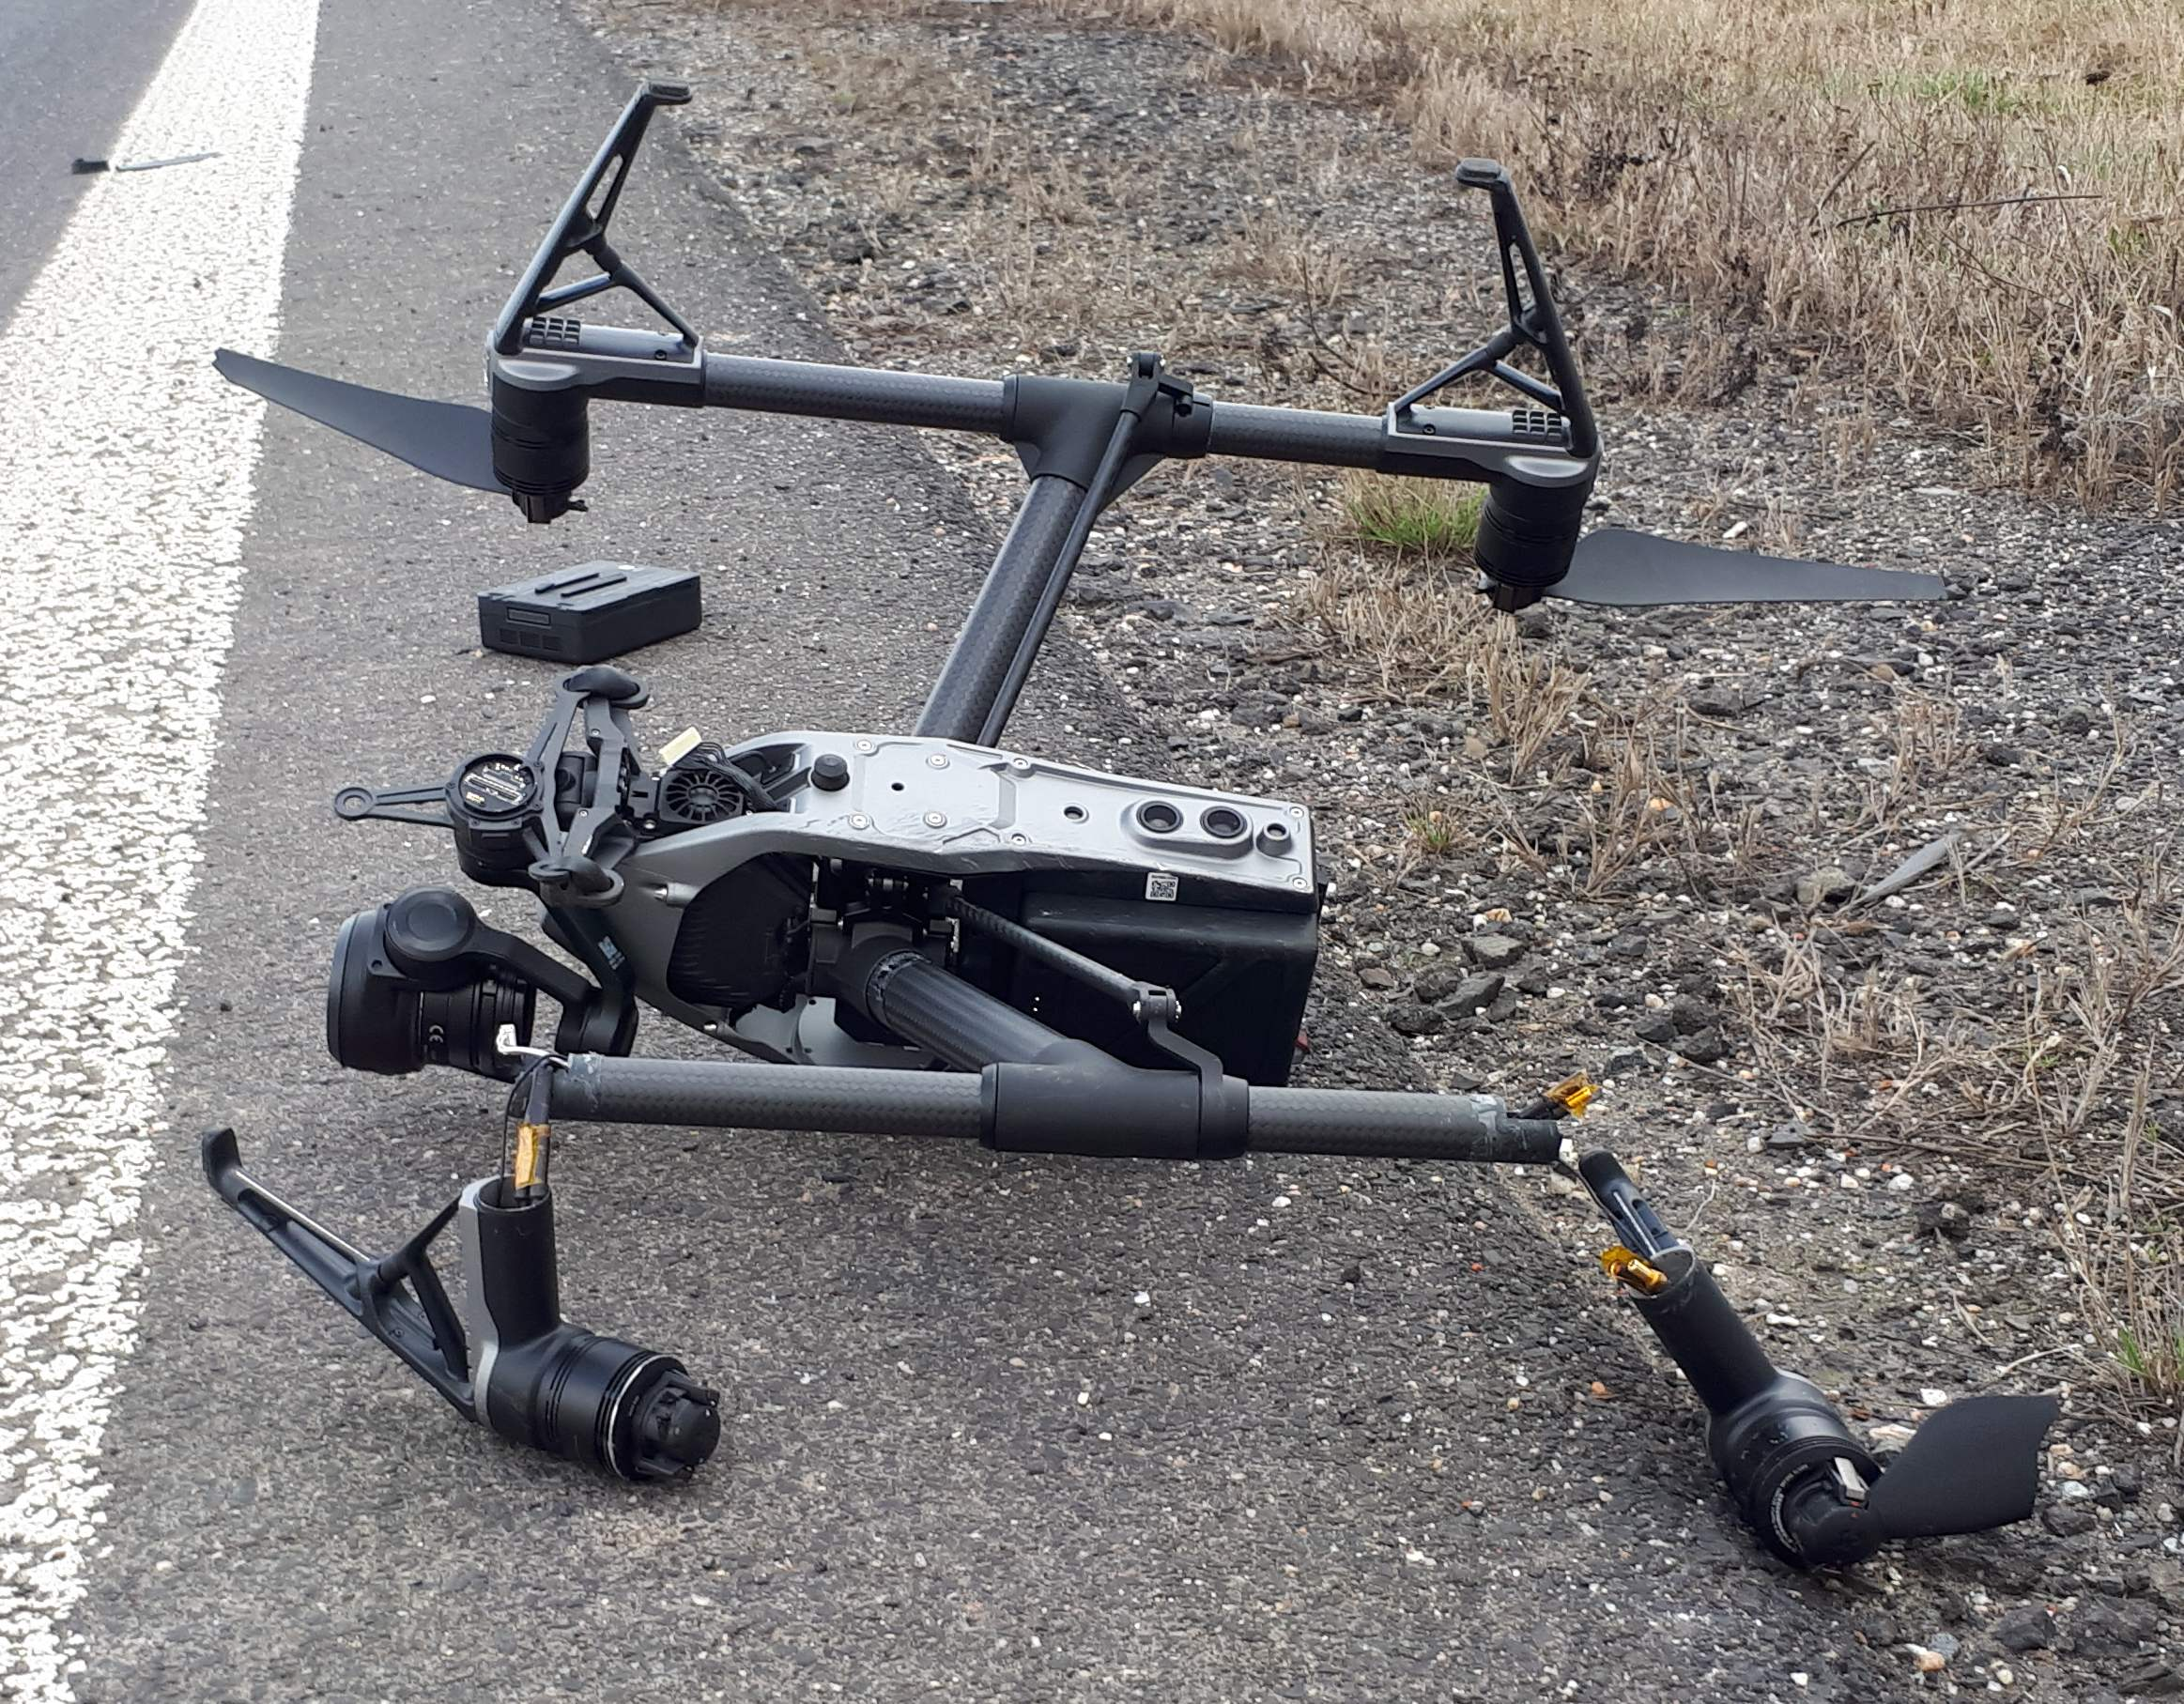 Inspire 2 Crash For Unknown Reason